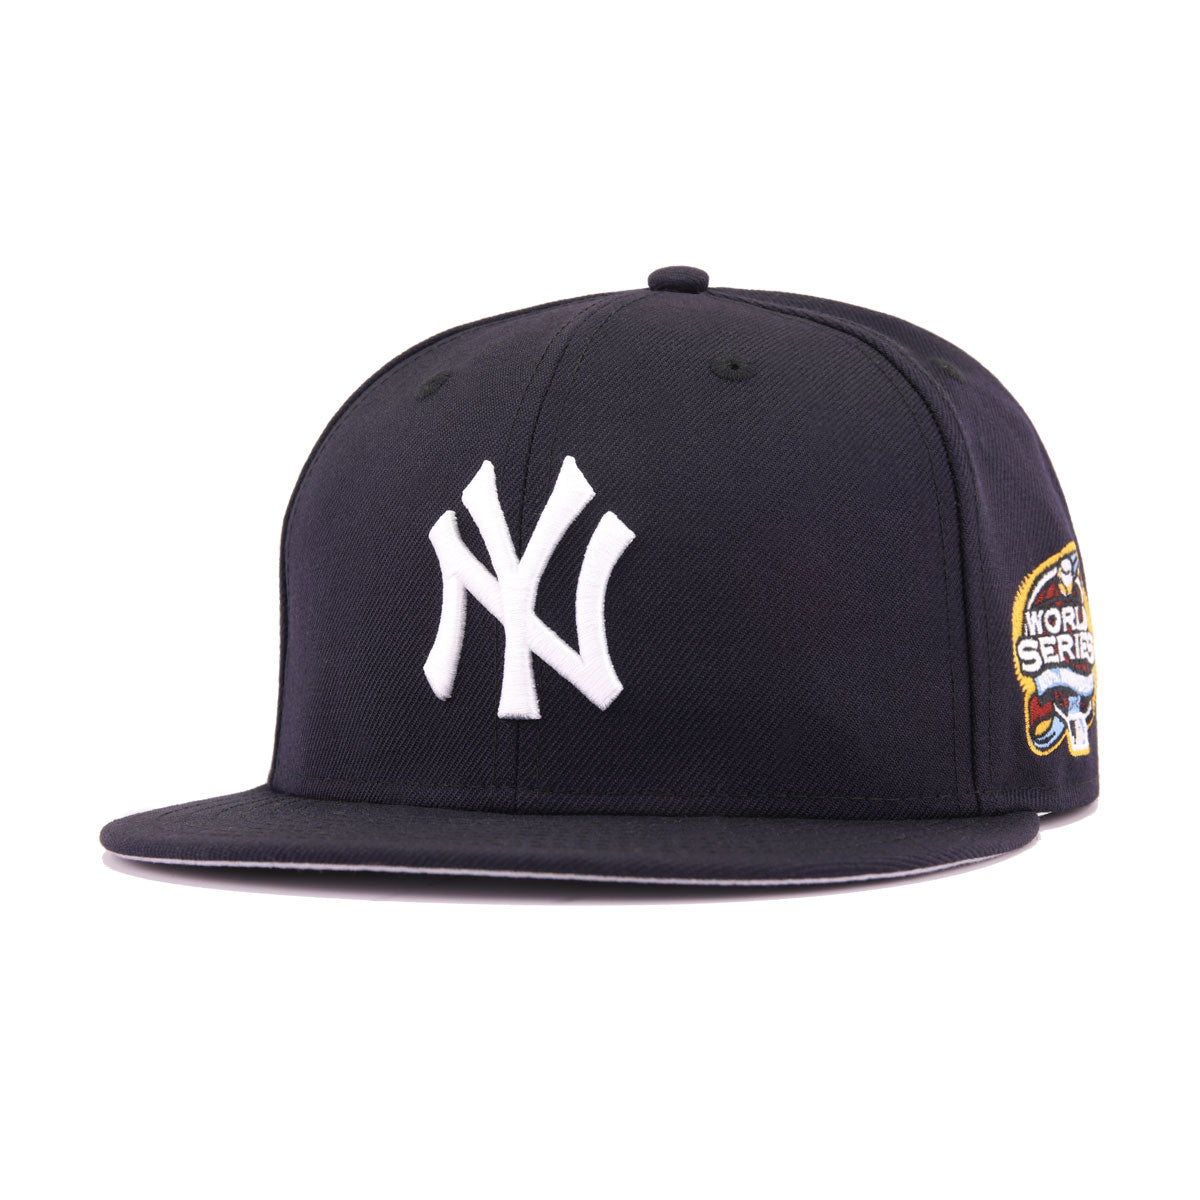 812beca57e8 New York Yankees Navy Cooperstown 2003 World Series New Era 59Fifty Fitted